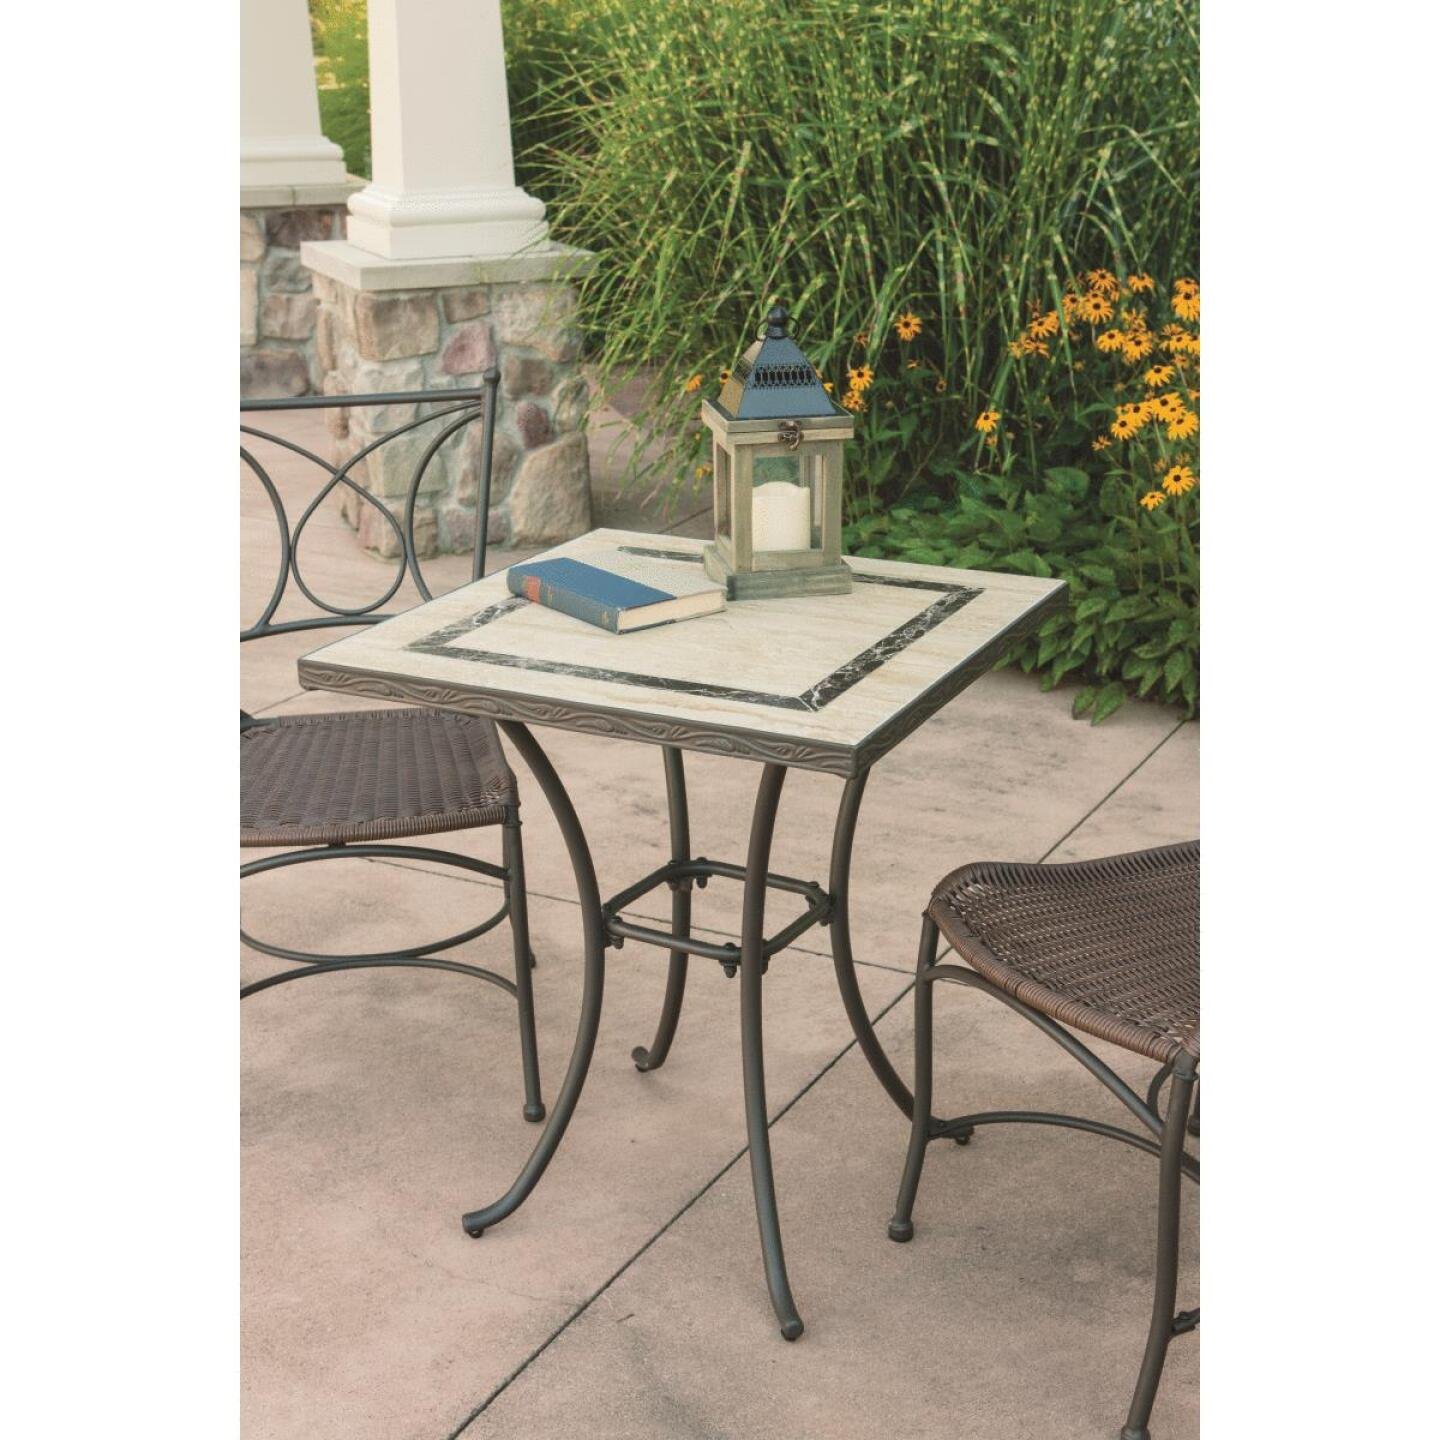 Florence 3-Piece Bistro Set with Wicker Seats Image 9